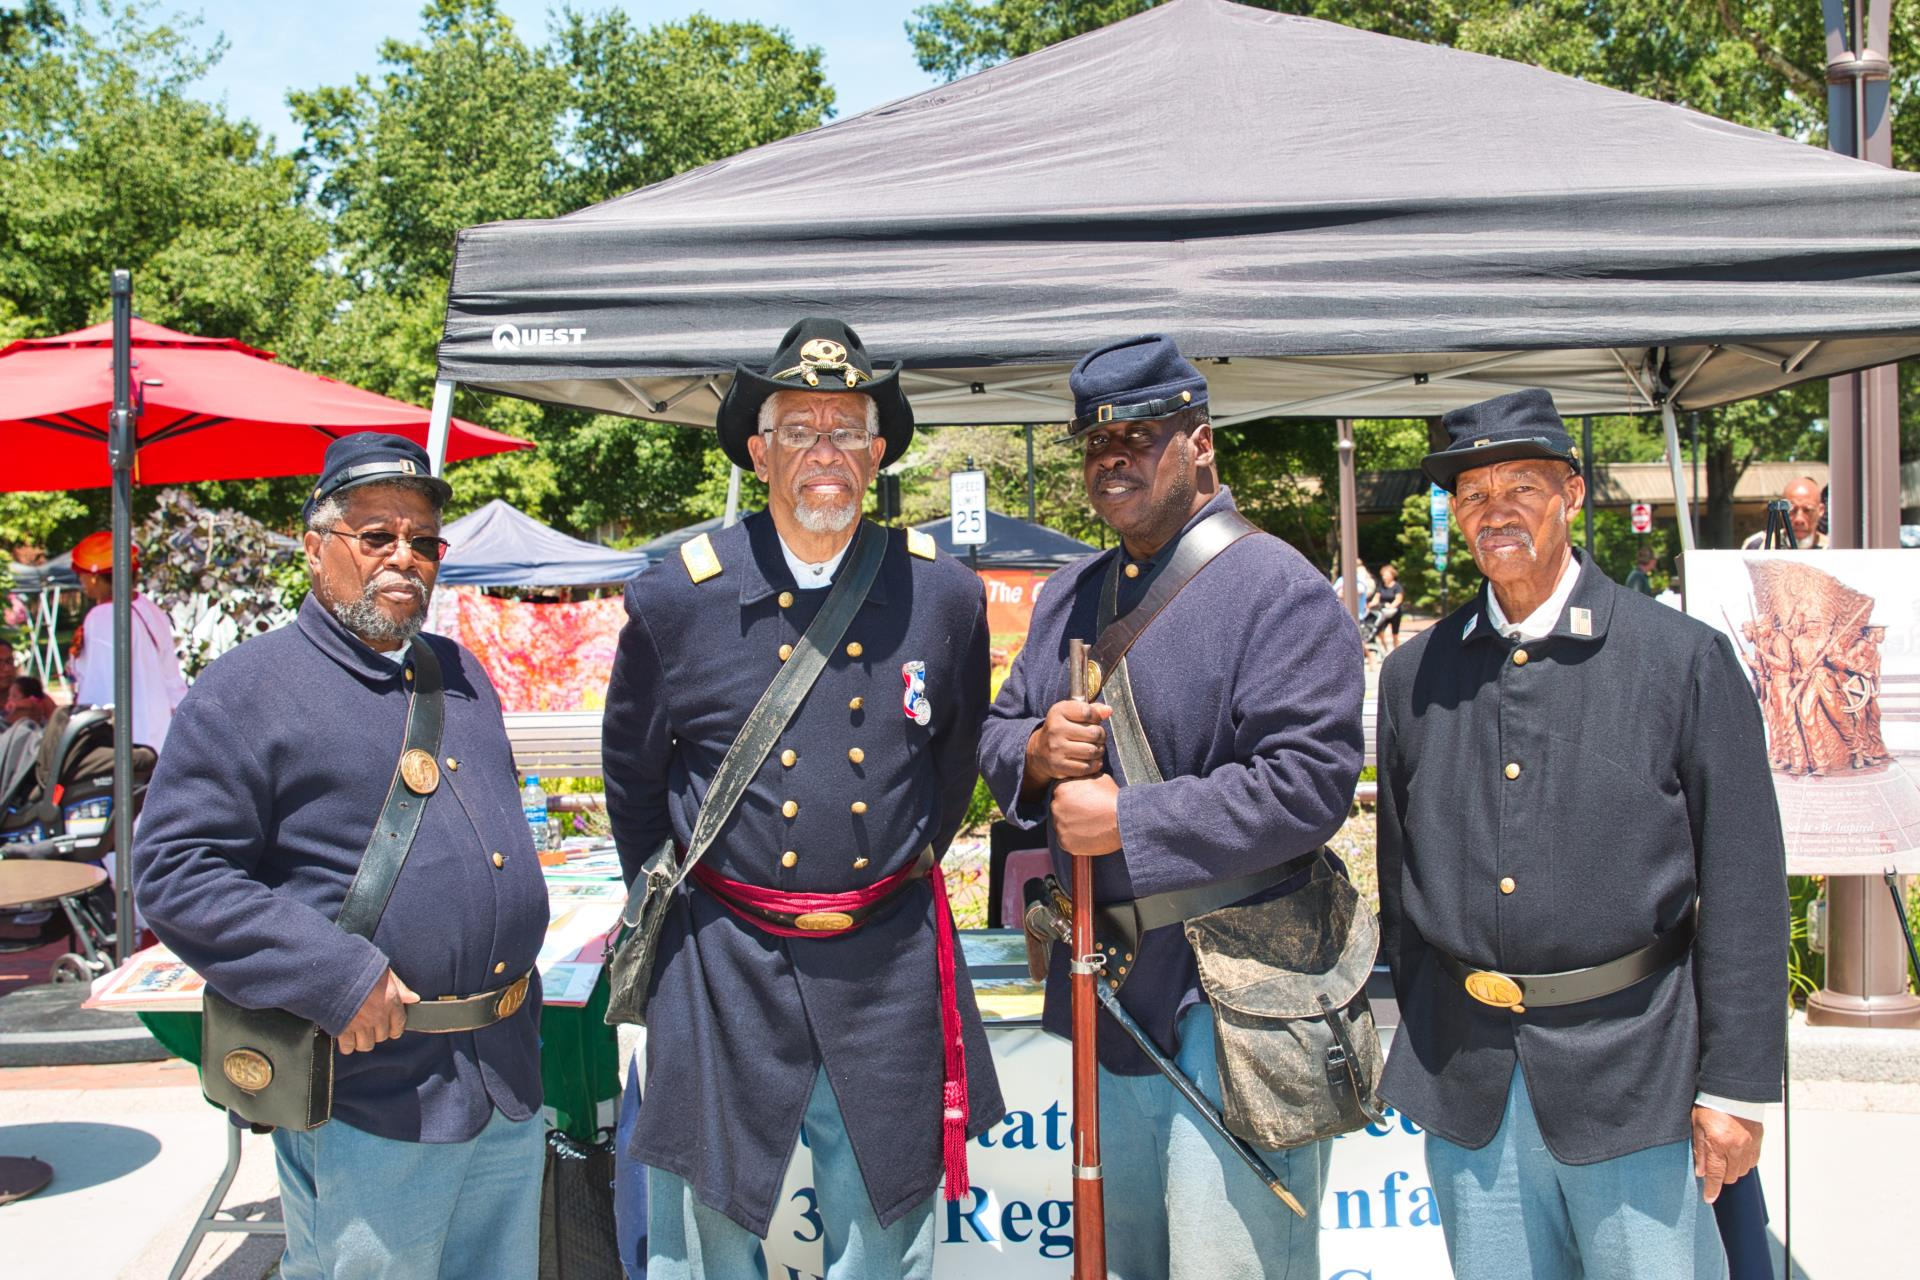 Attendees in Civil War uniforms at 2019 Cary Juneteenth Celebration